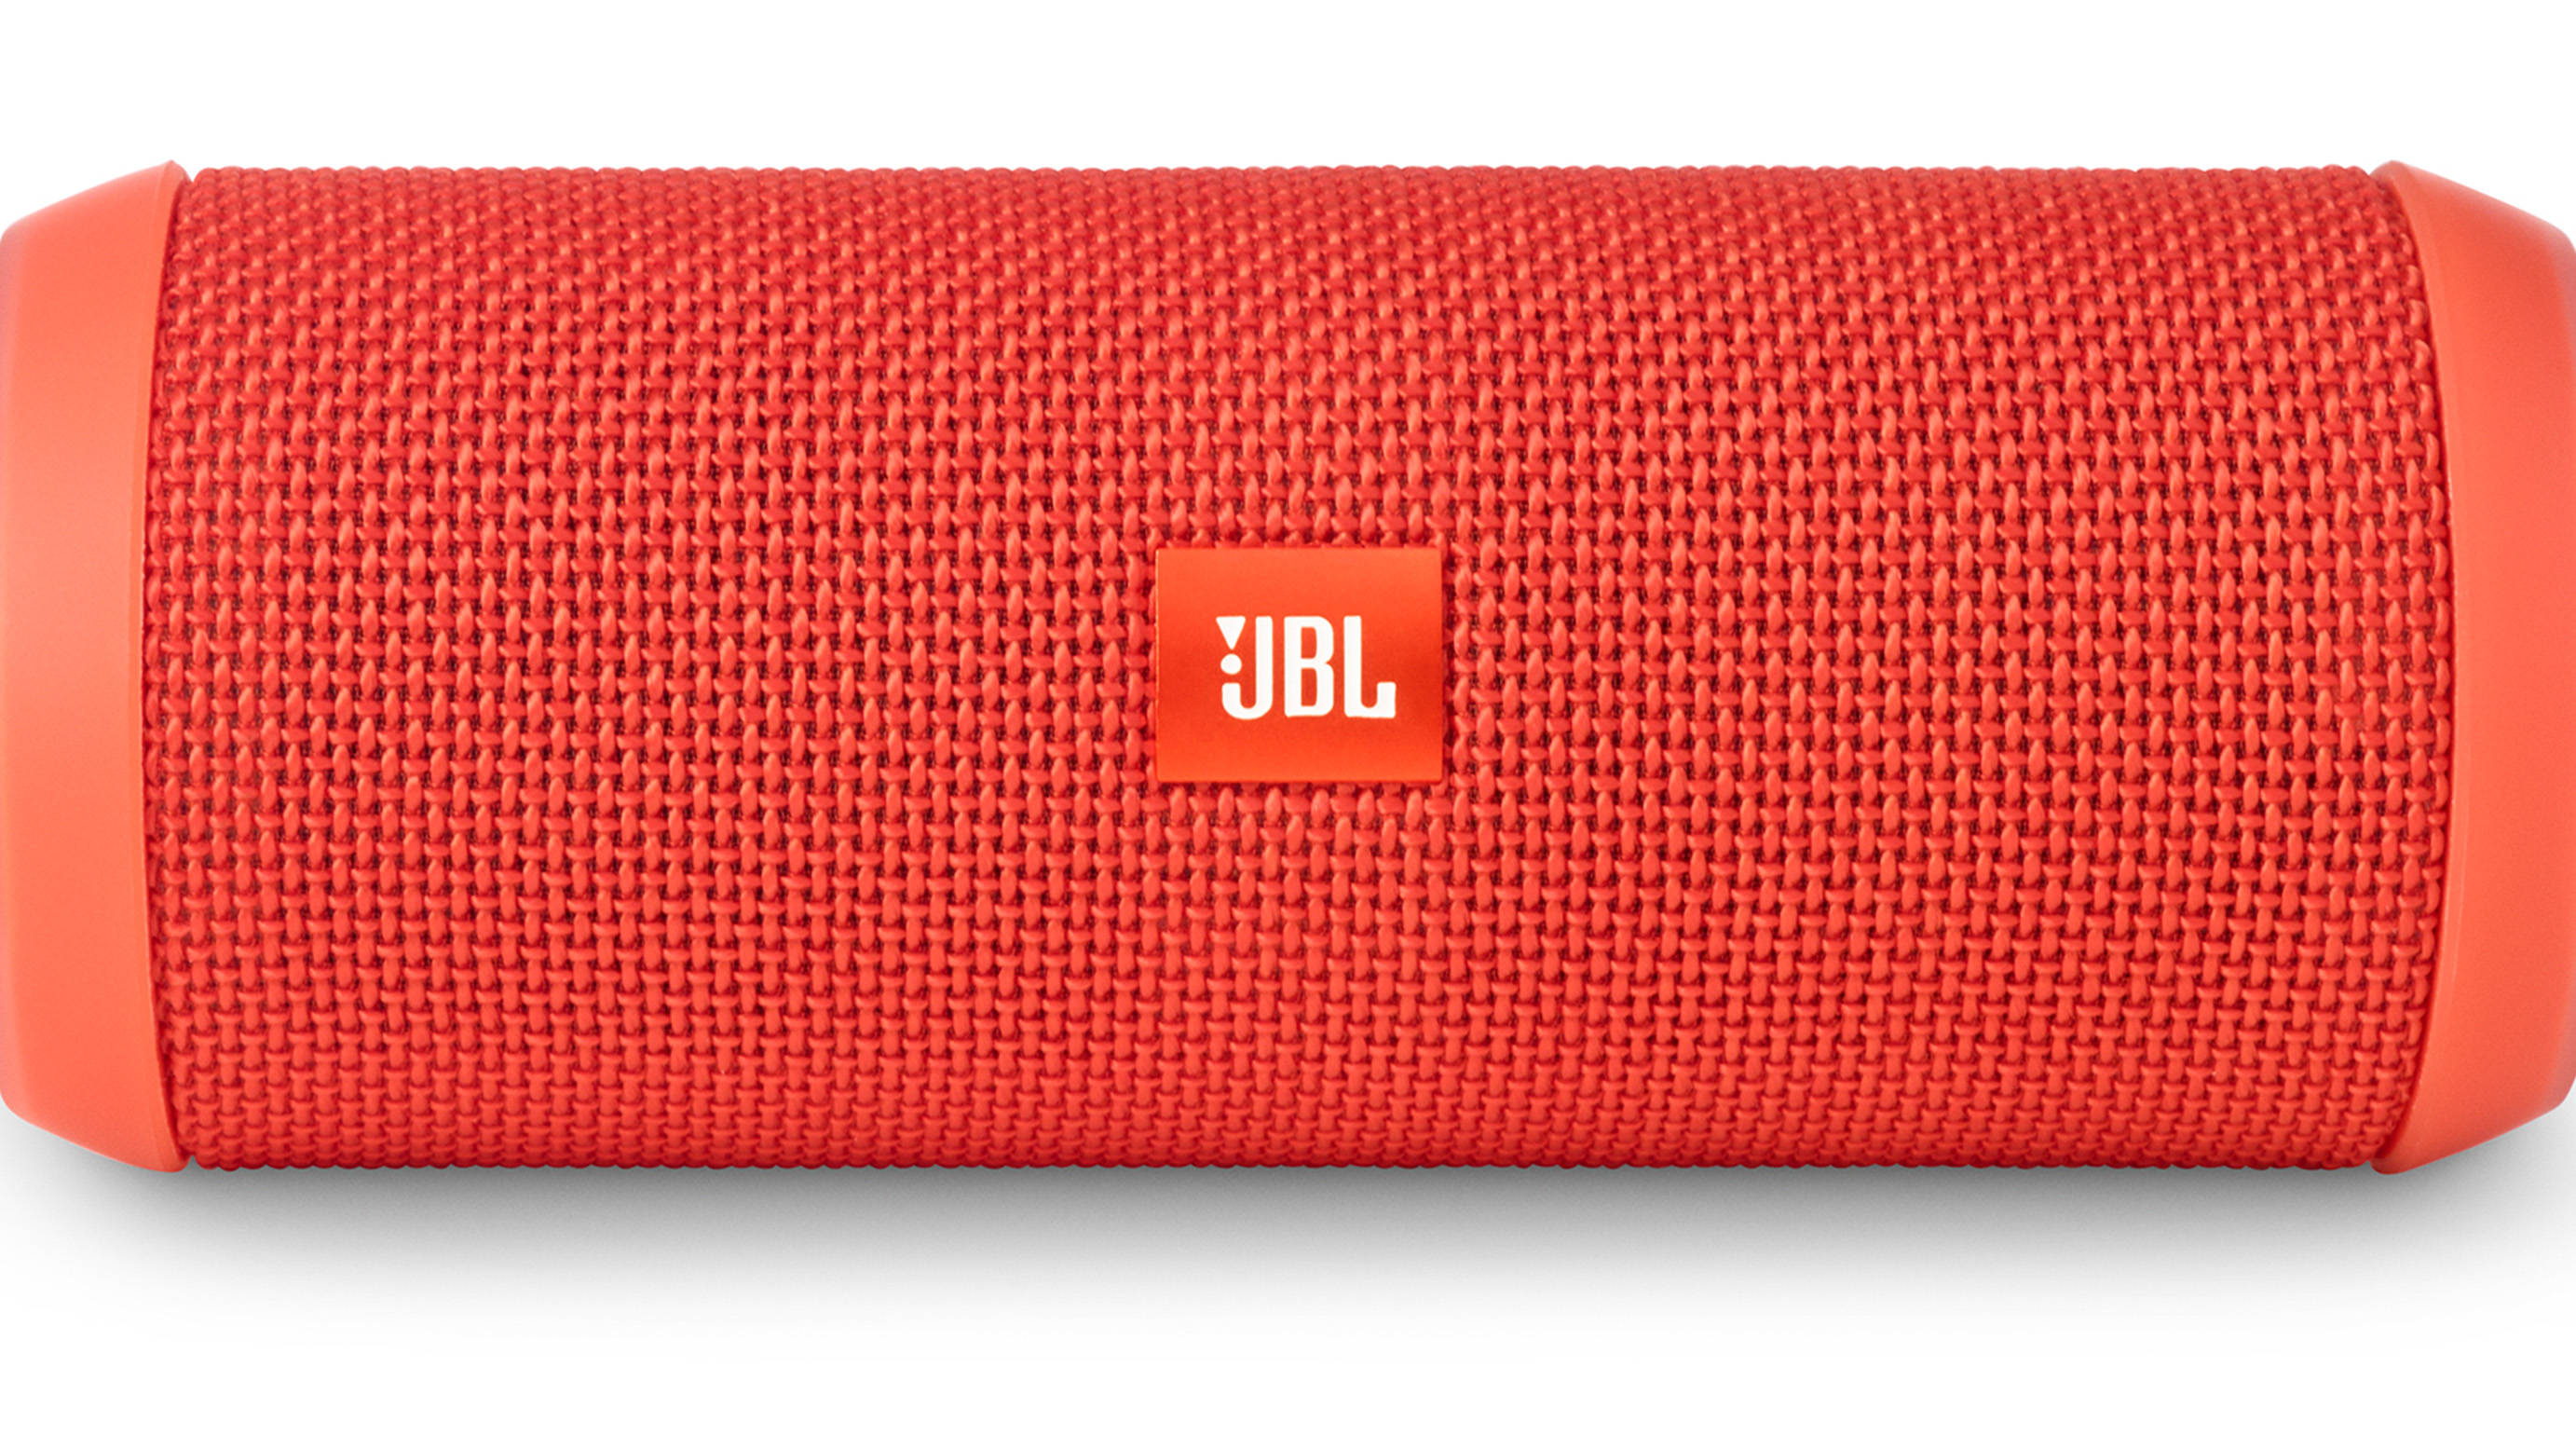 JBL Flip 3 Portable Bluetooth Speaker (Orange)